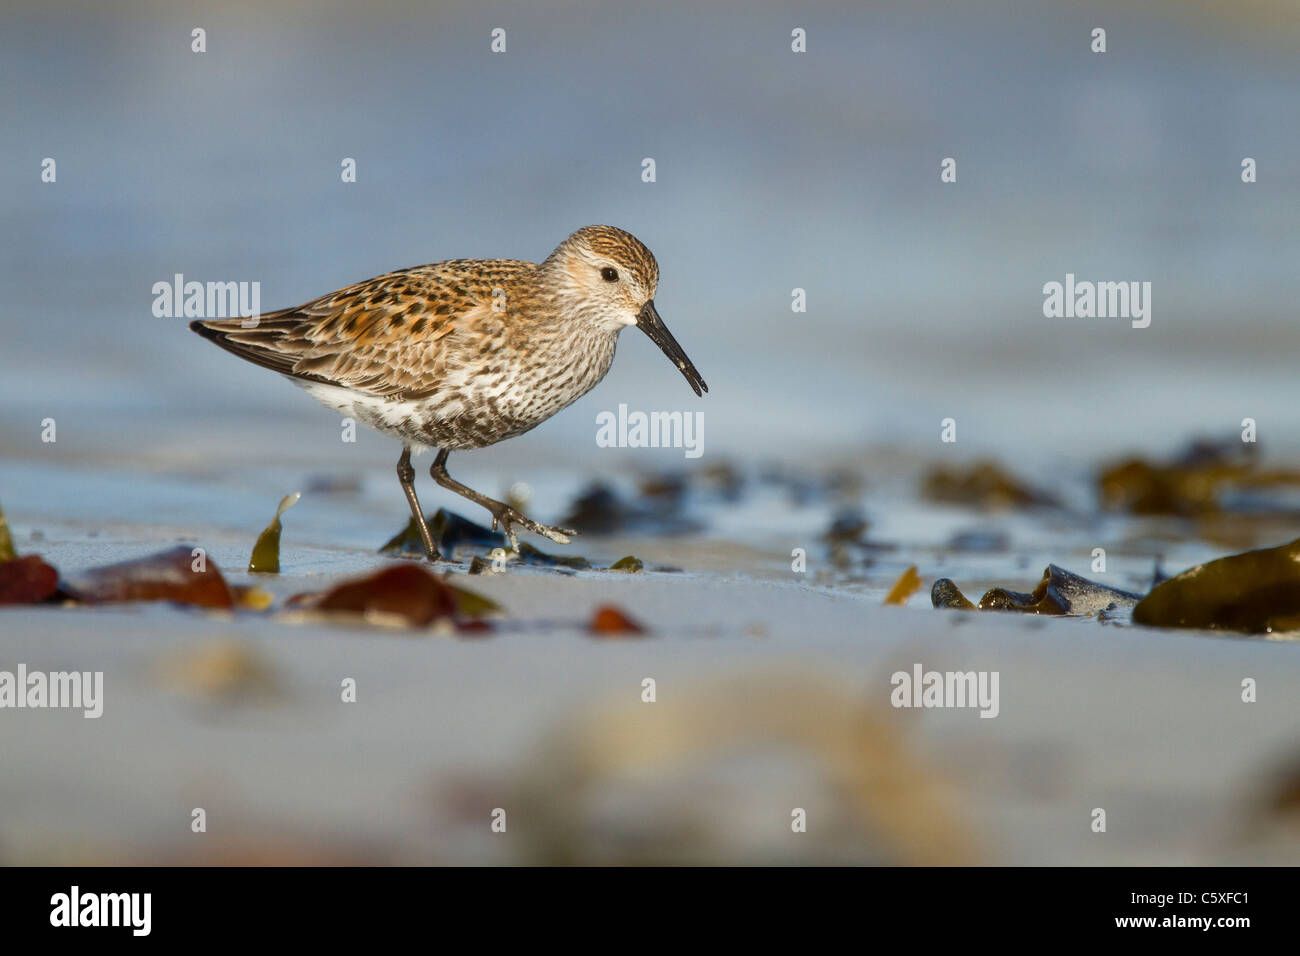 Dunlin, Calidris alpina, feeding in shallow water on beach in Scotland, part of a party of Dunlin migrating through - Stock Image